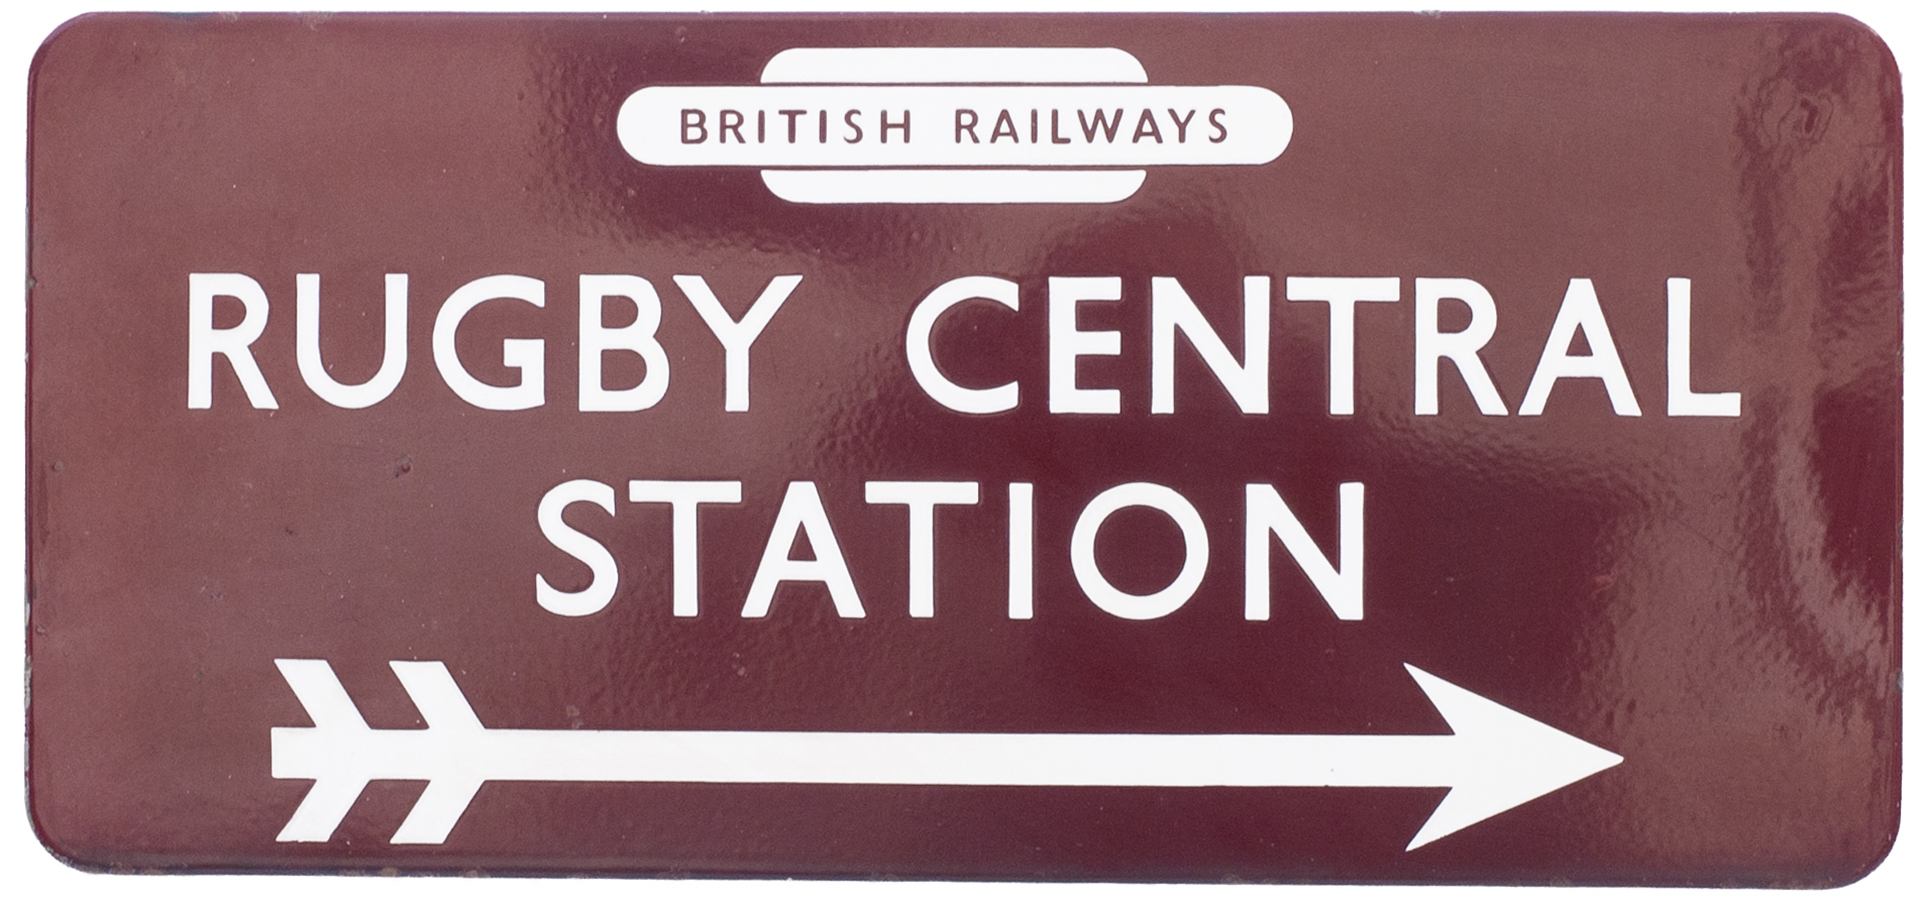 BR(M) FF enamel station direction sign RUGBY CENTRAL STATION with right facing arrow and British